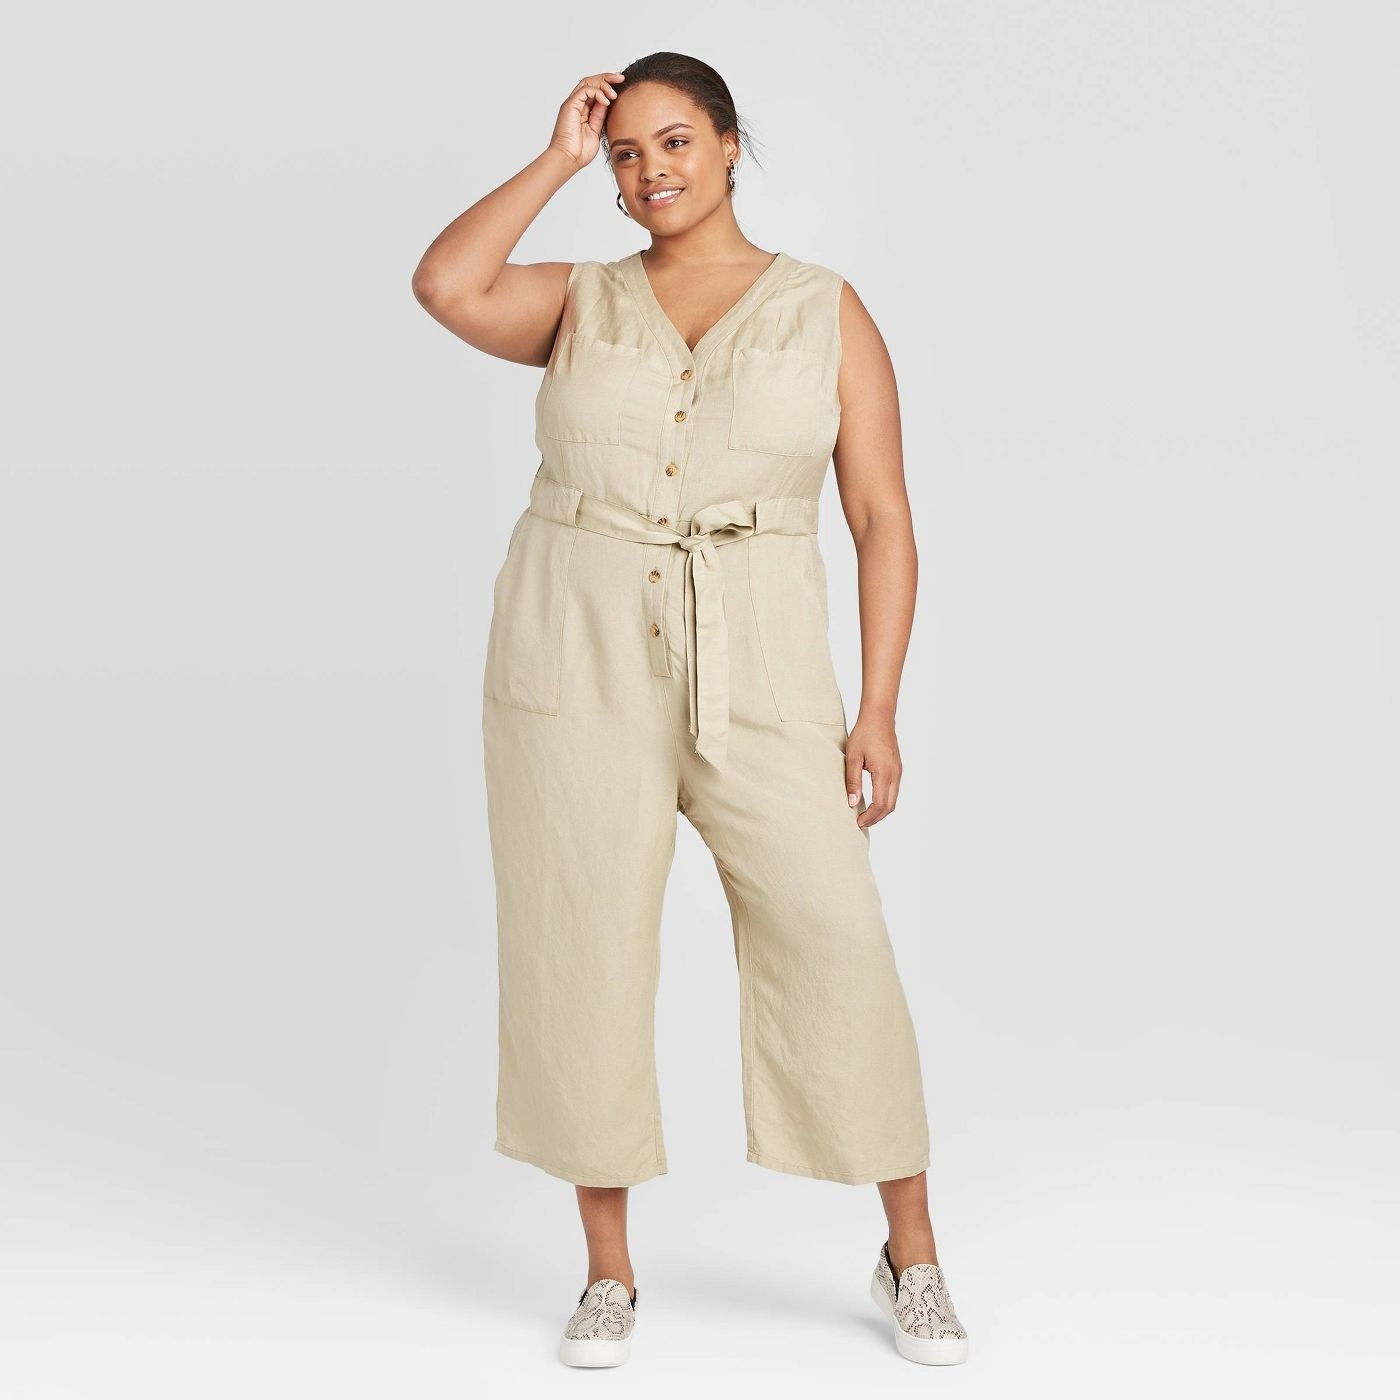 A model in the beige jumpsuit